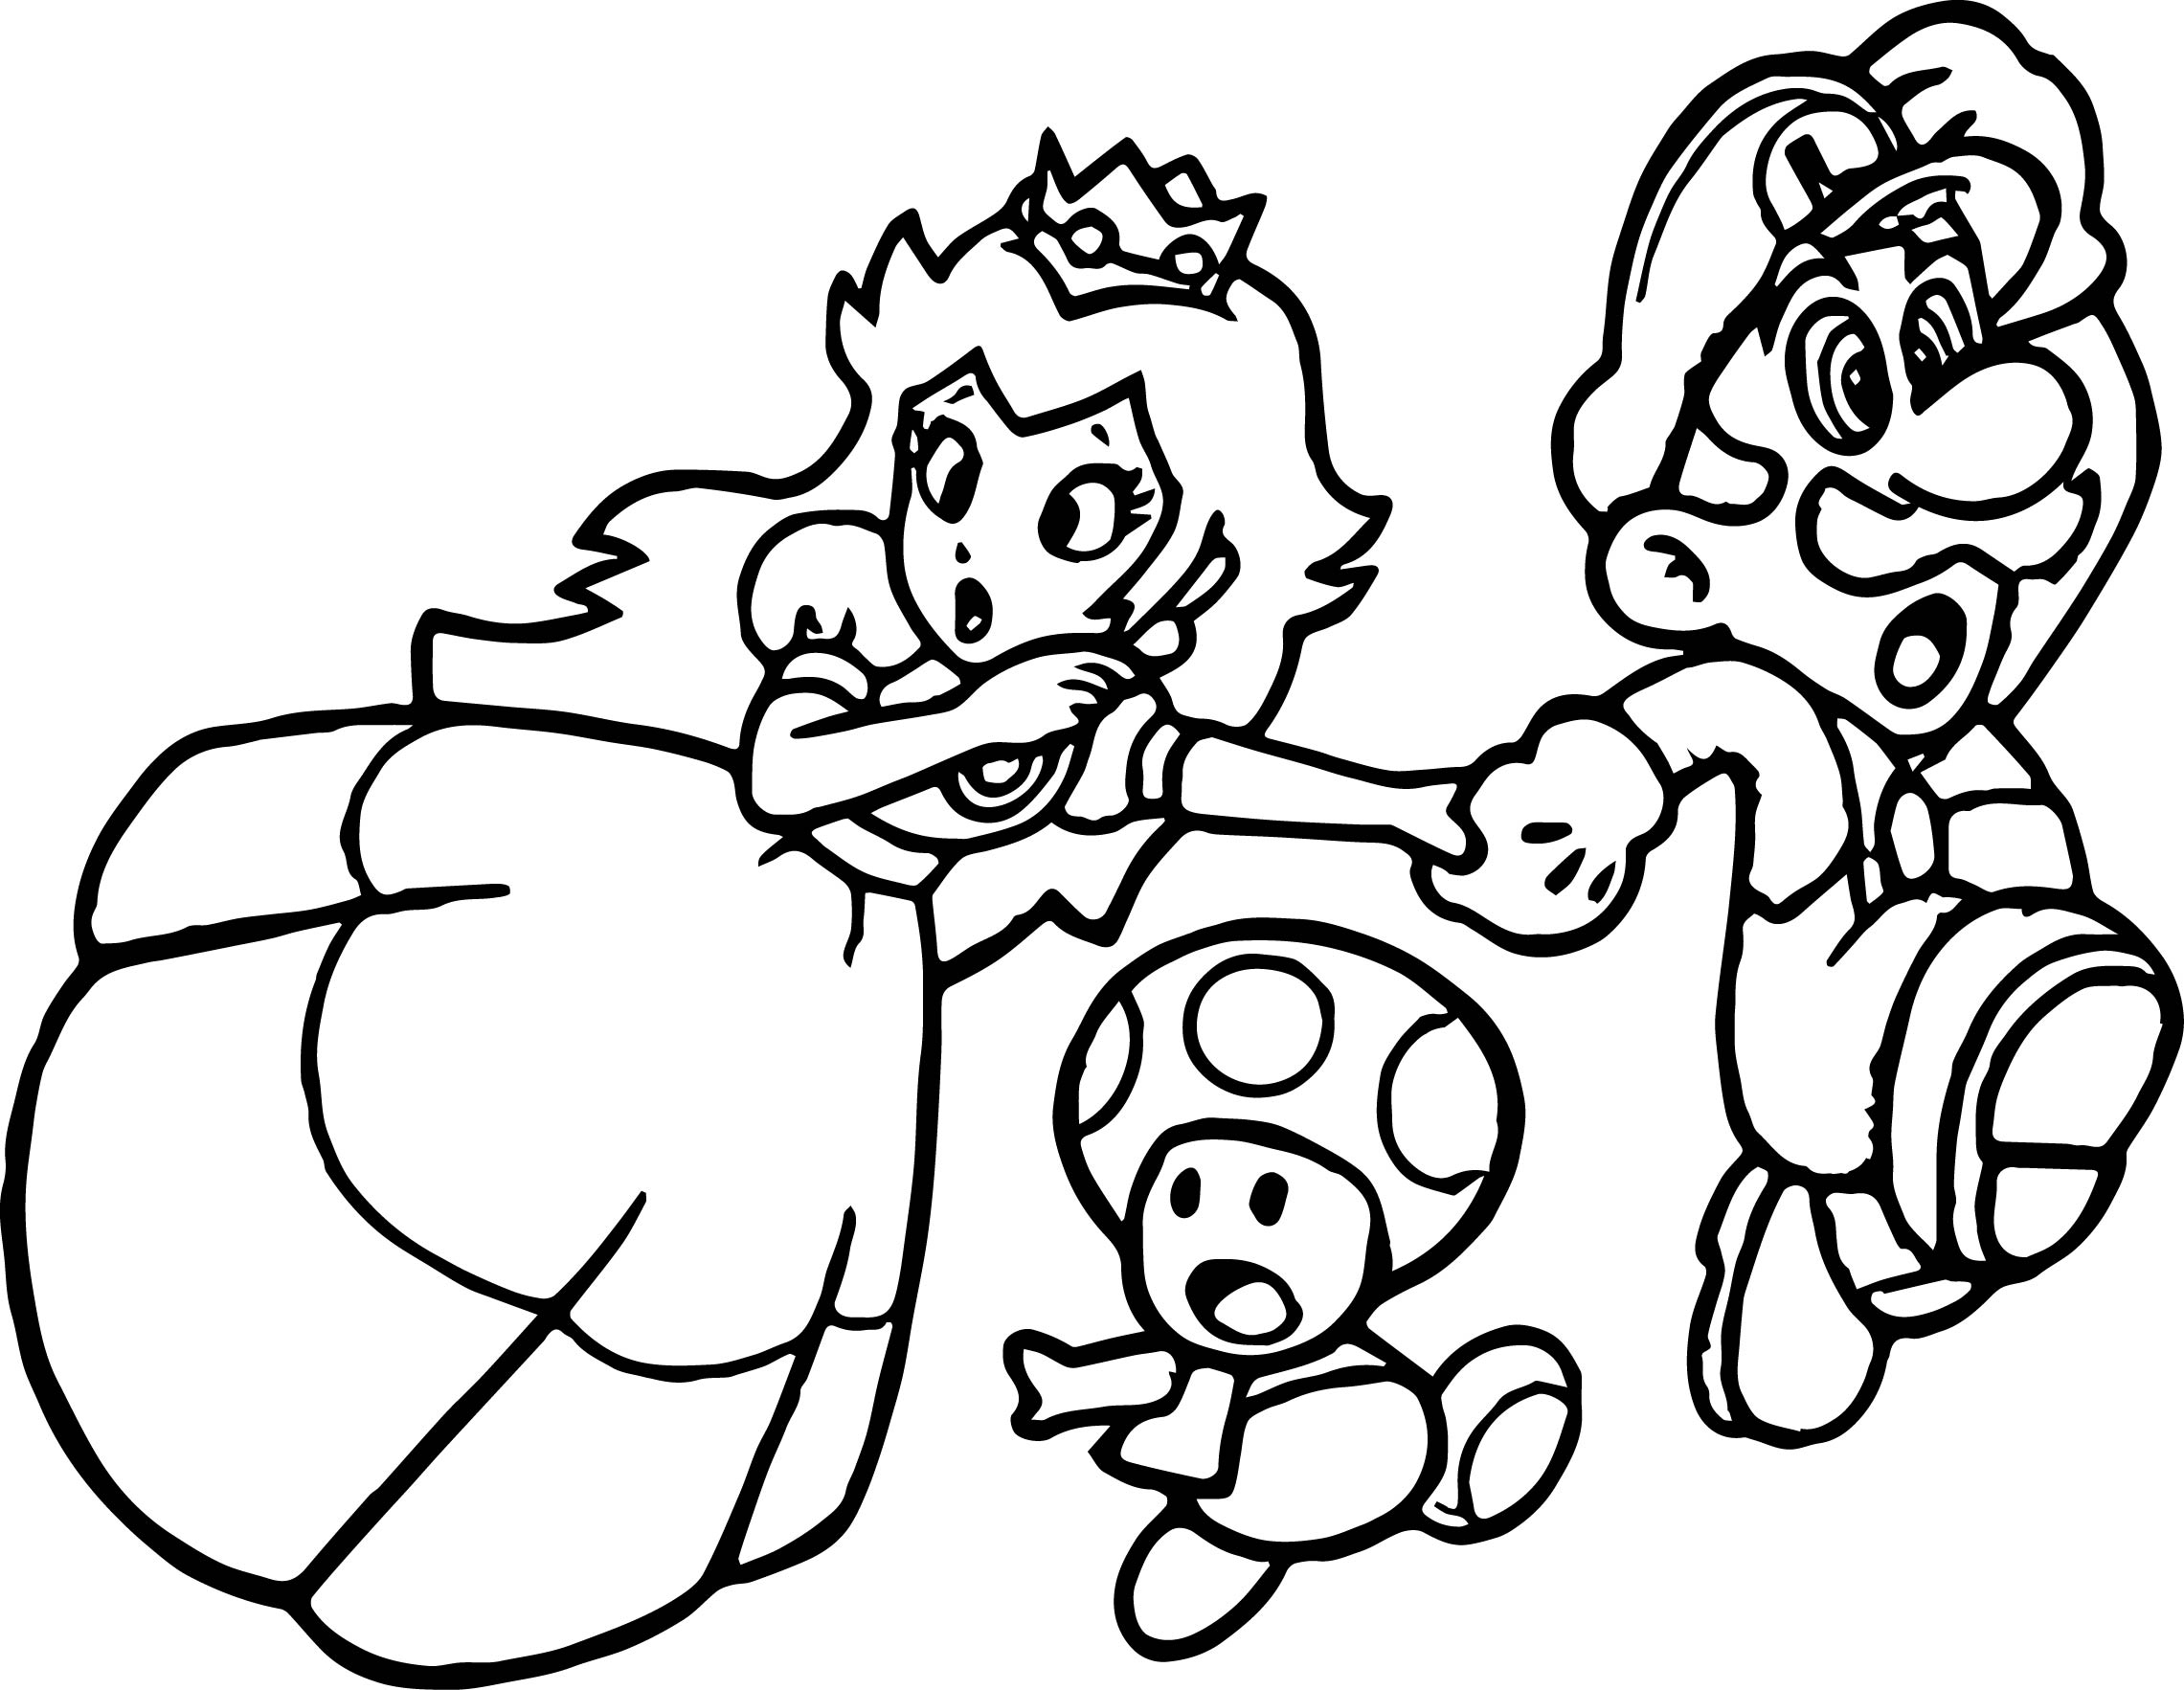 mario coloring book pages mario coloring pages free large images mario coloring pages book